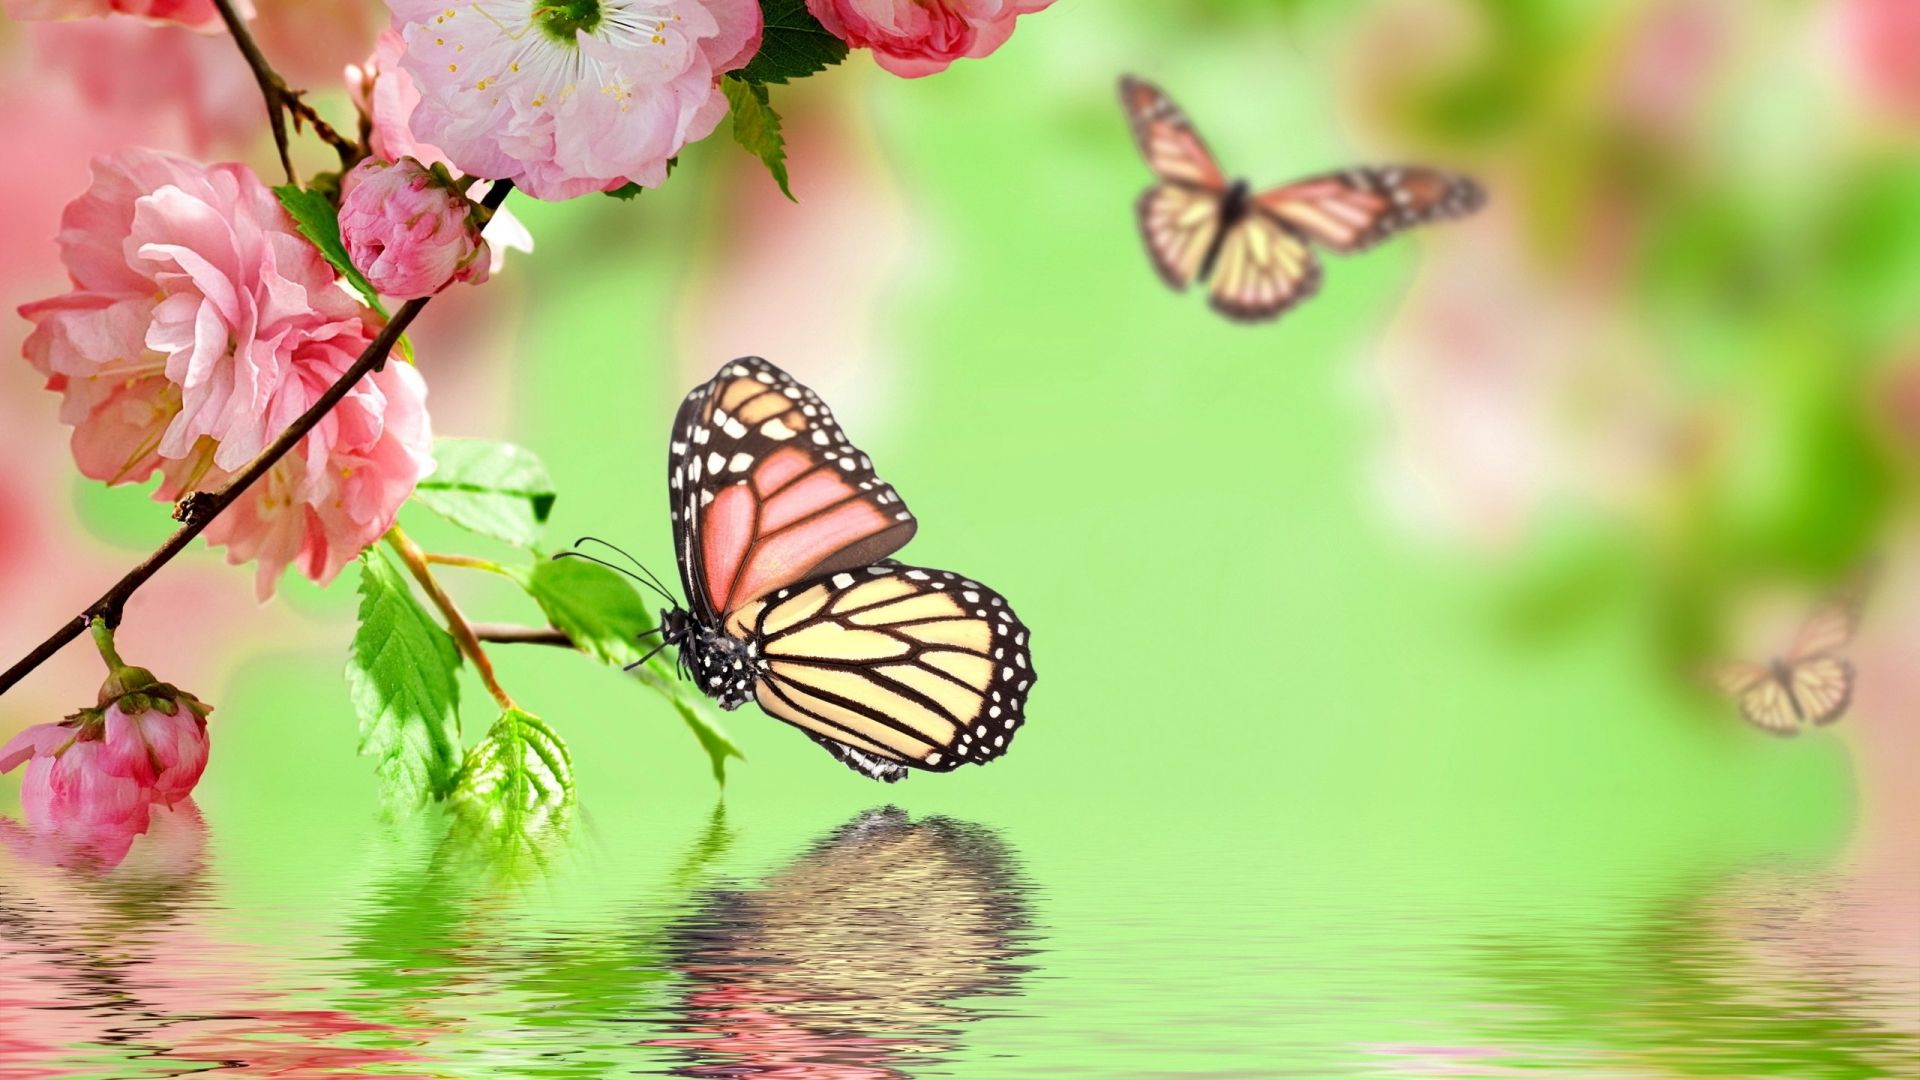 Background Flowers Butterfly